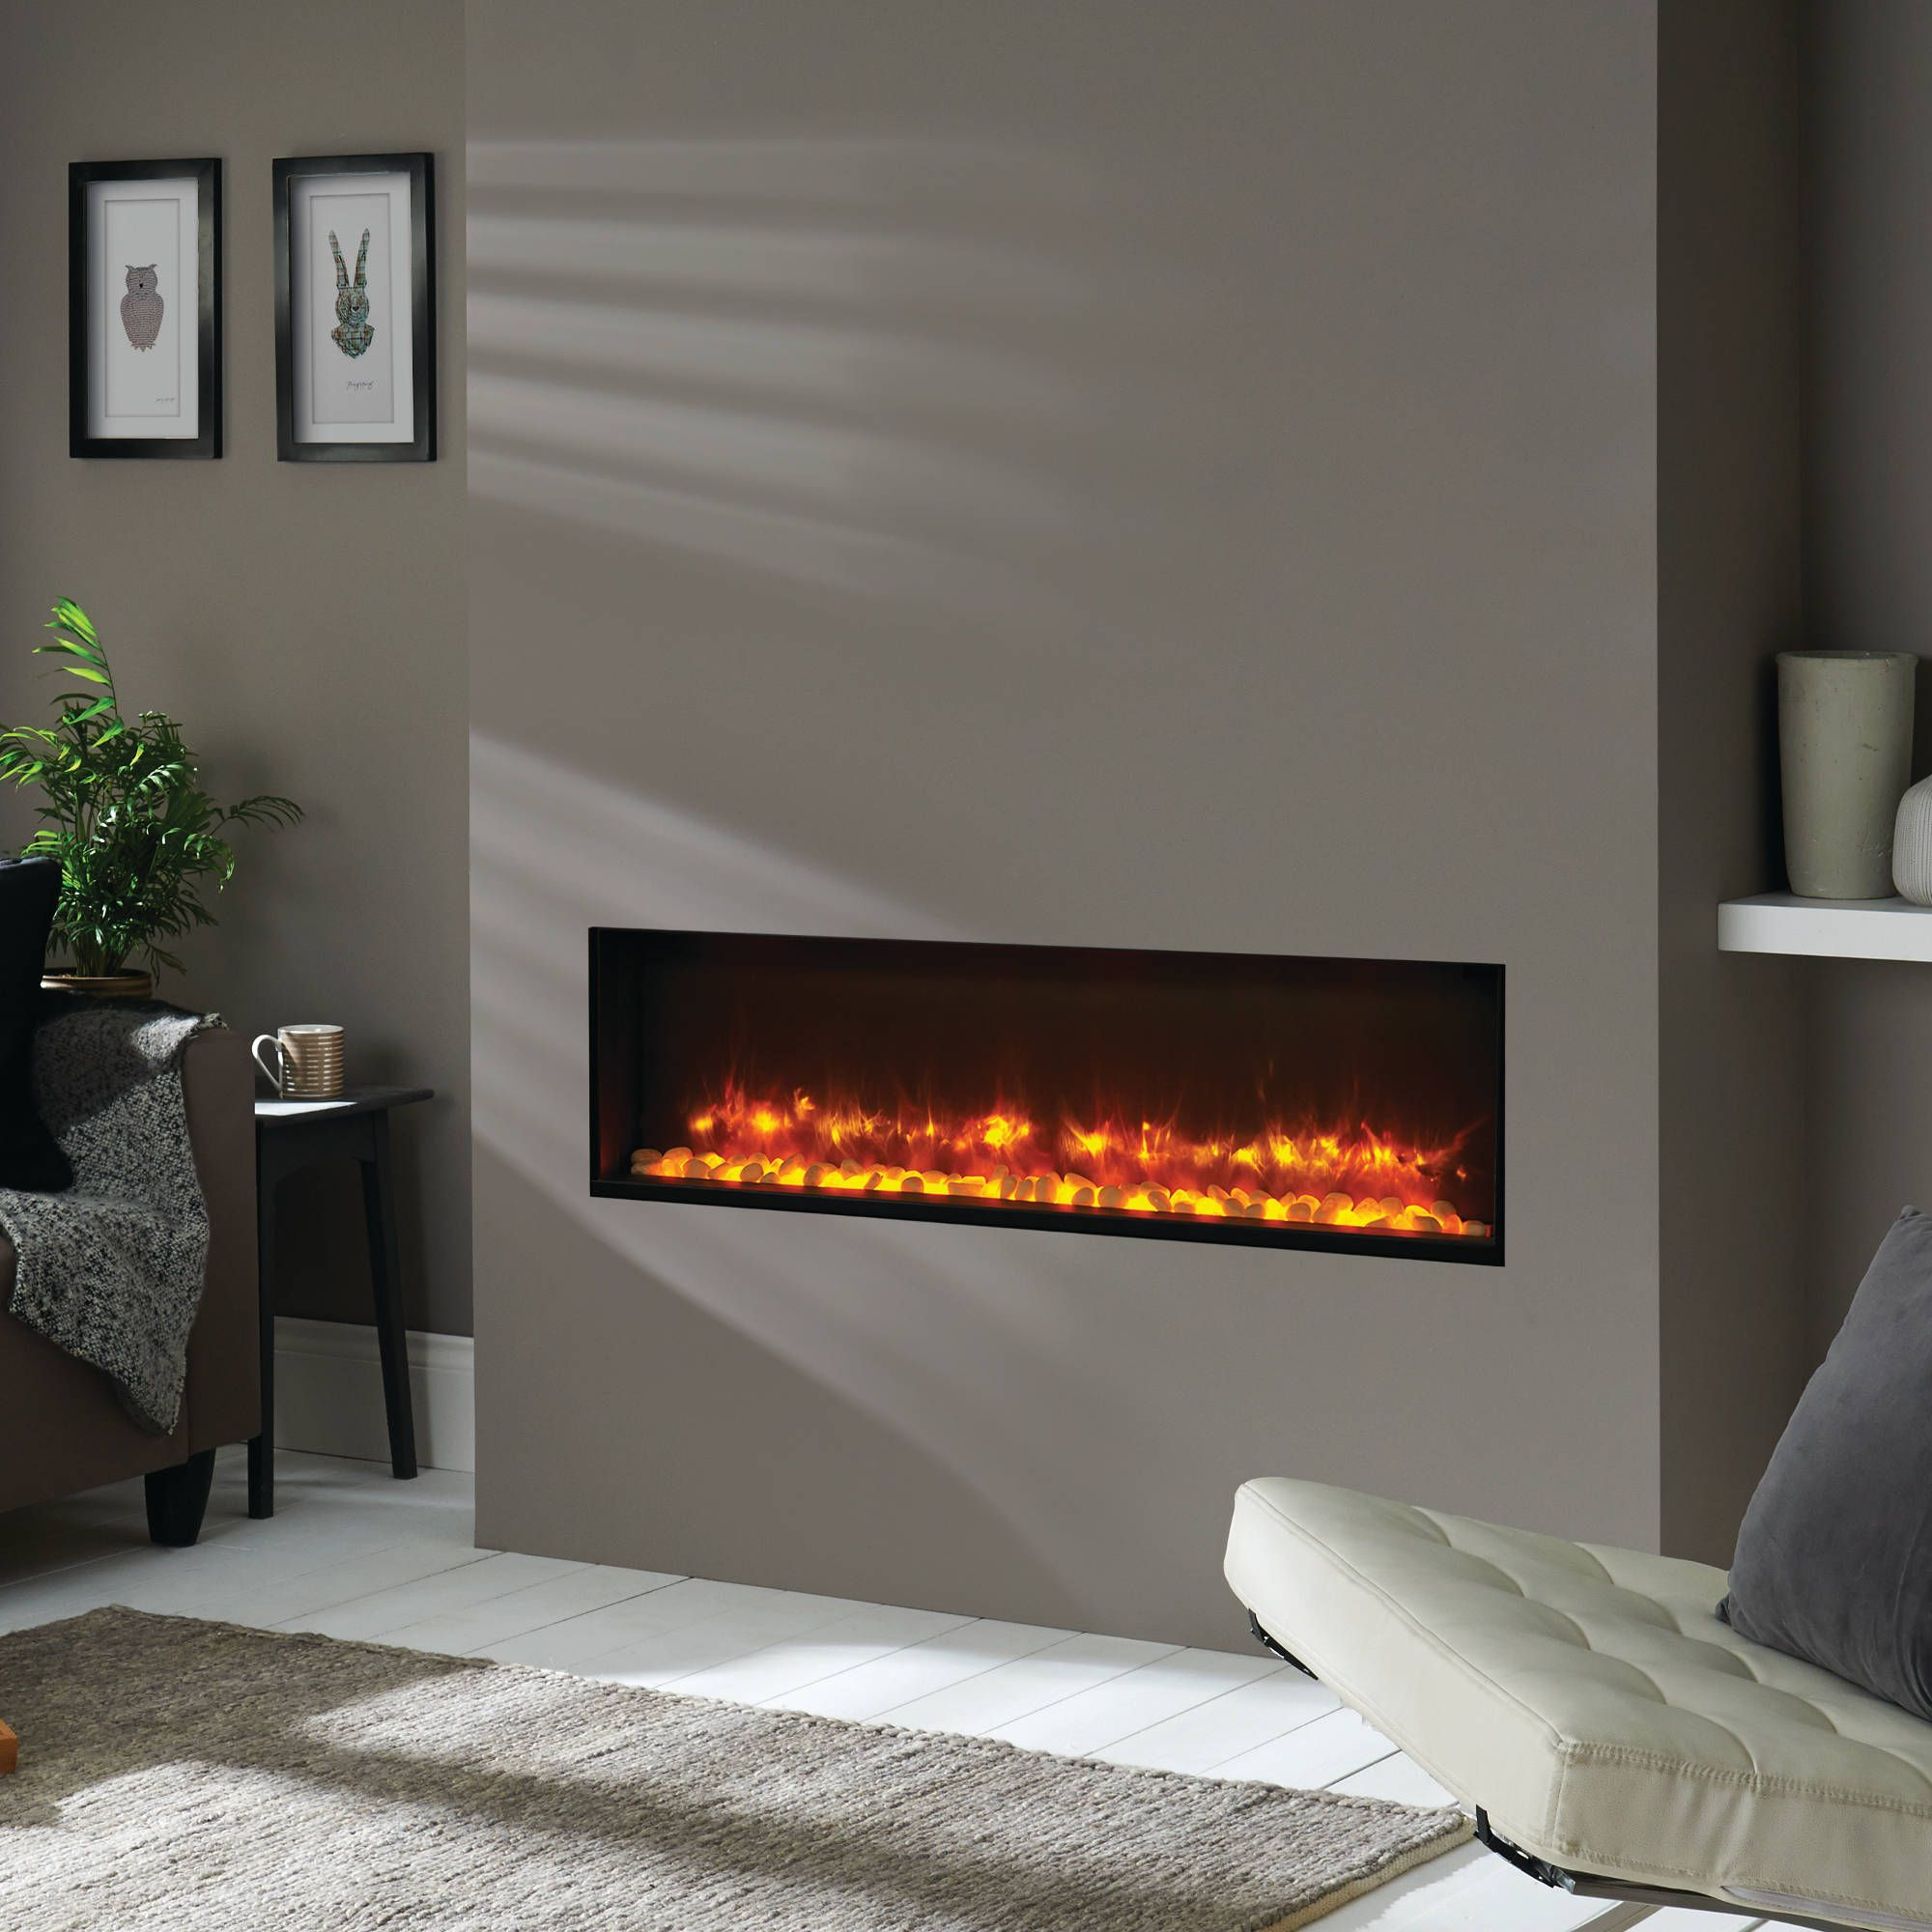 Gazco Radiance Inset 105R fire is a contemporary design suitable for any room in the house, creating the ultimate centrepiece. Bell: EST 1898.